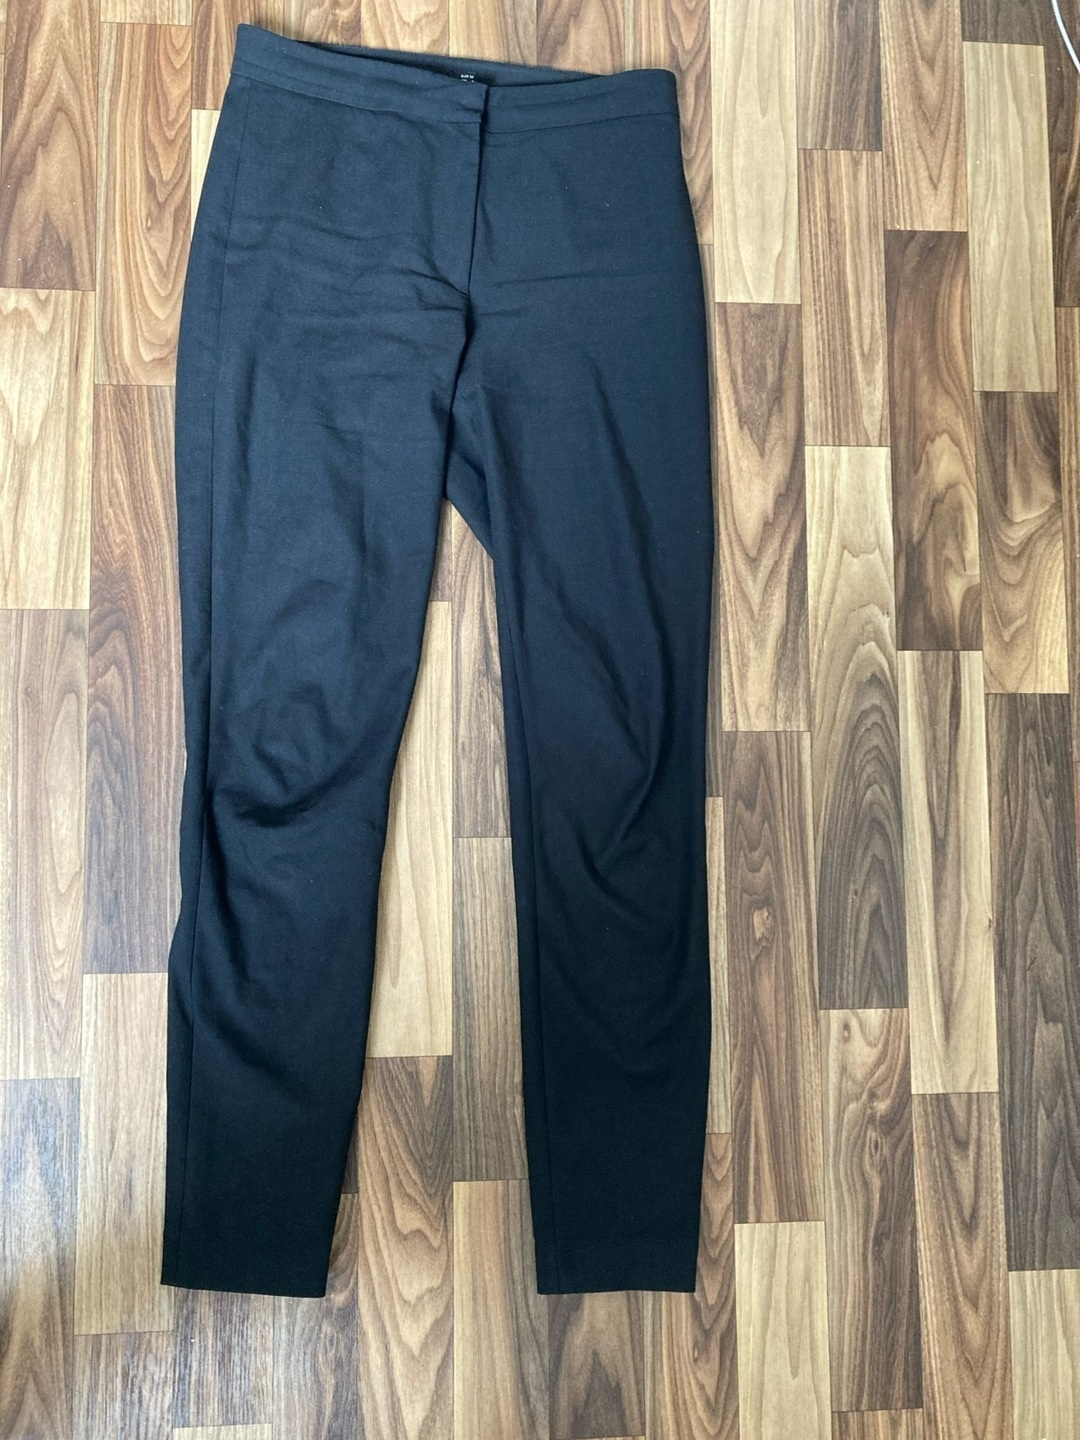 Women's trousers & jeans - HALLHUBER photo 3